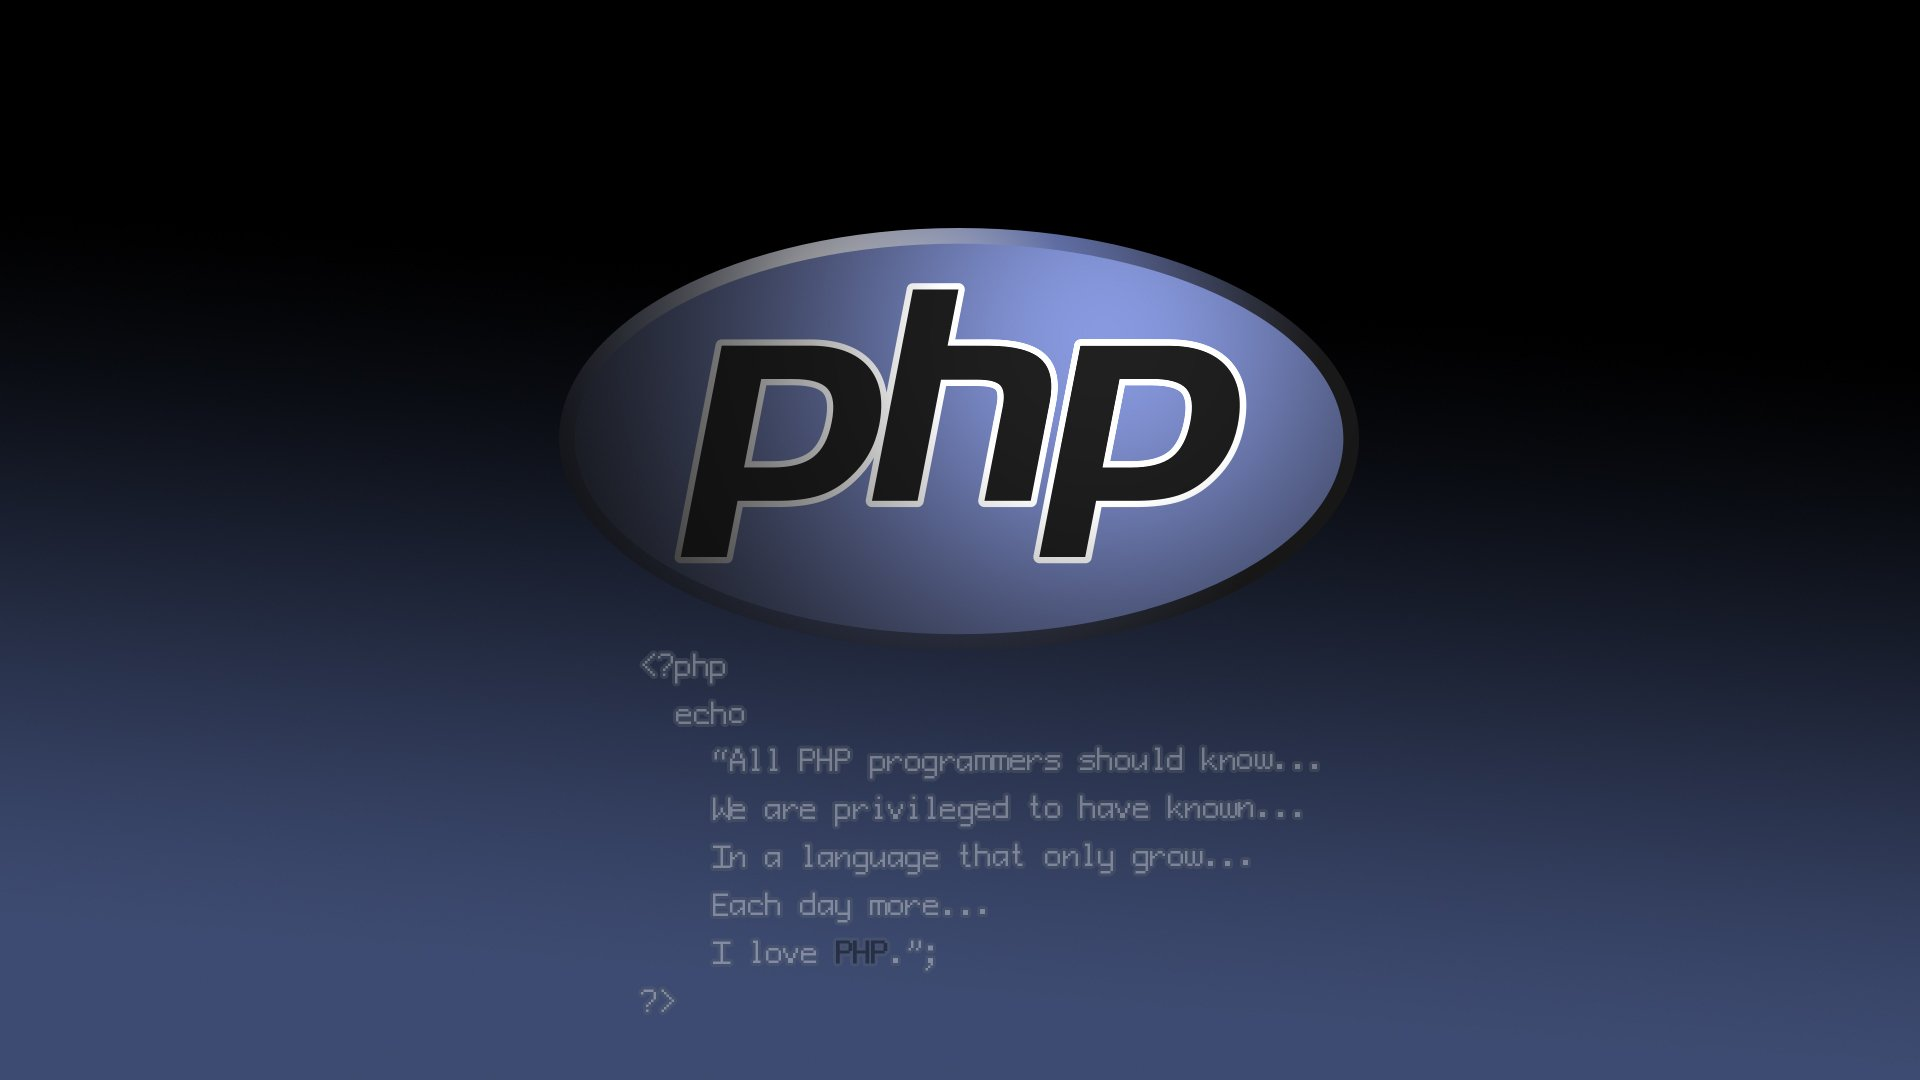 Php Wallpaper Hd Programming Hd Wallpaper Background Image 1920x1080 Id